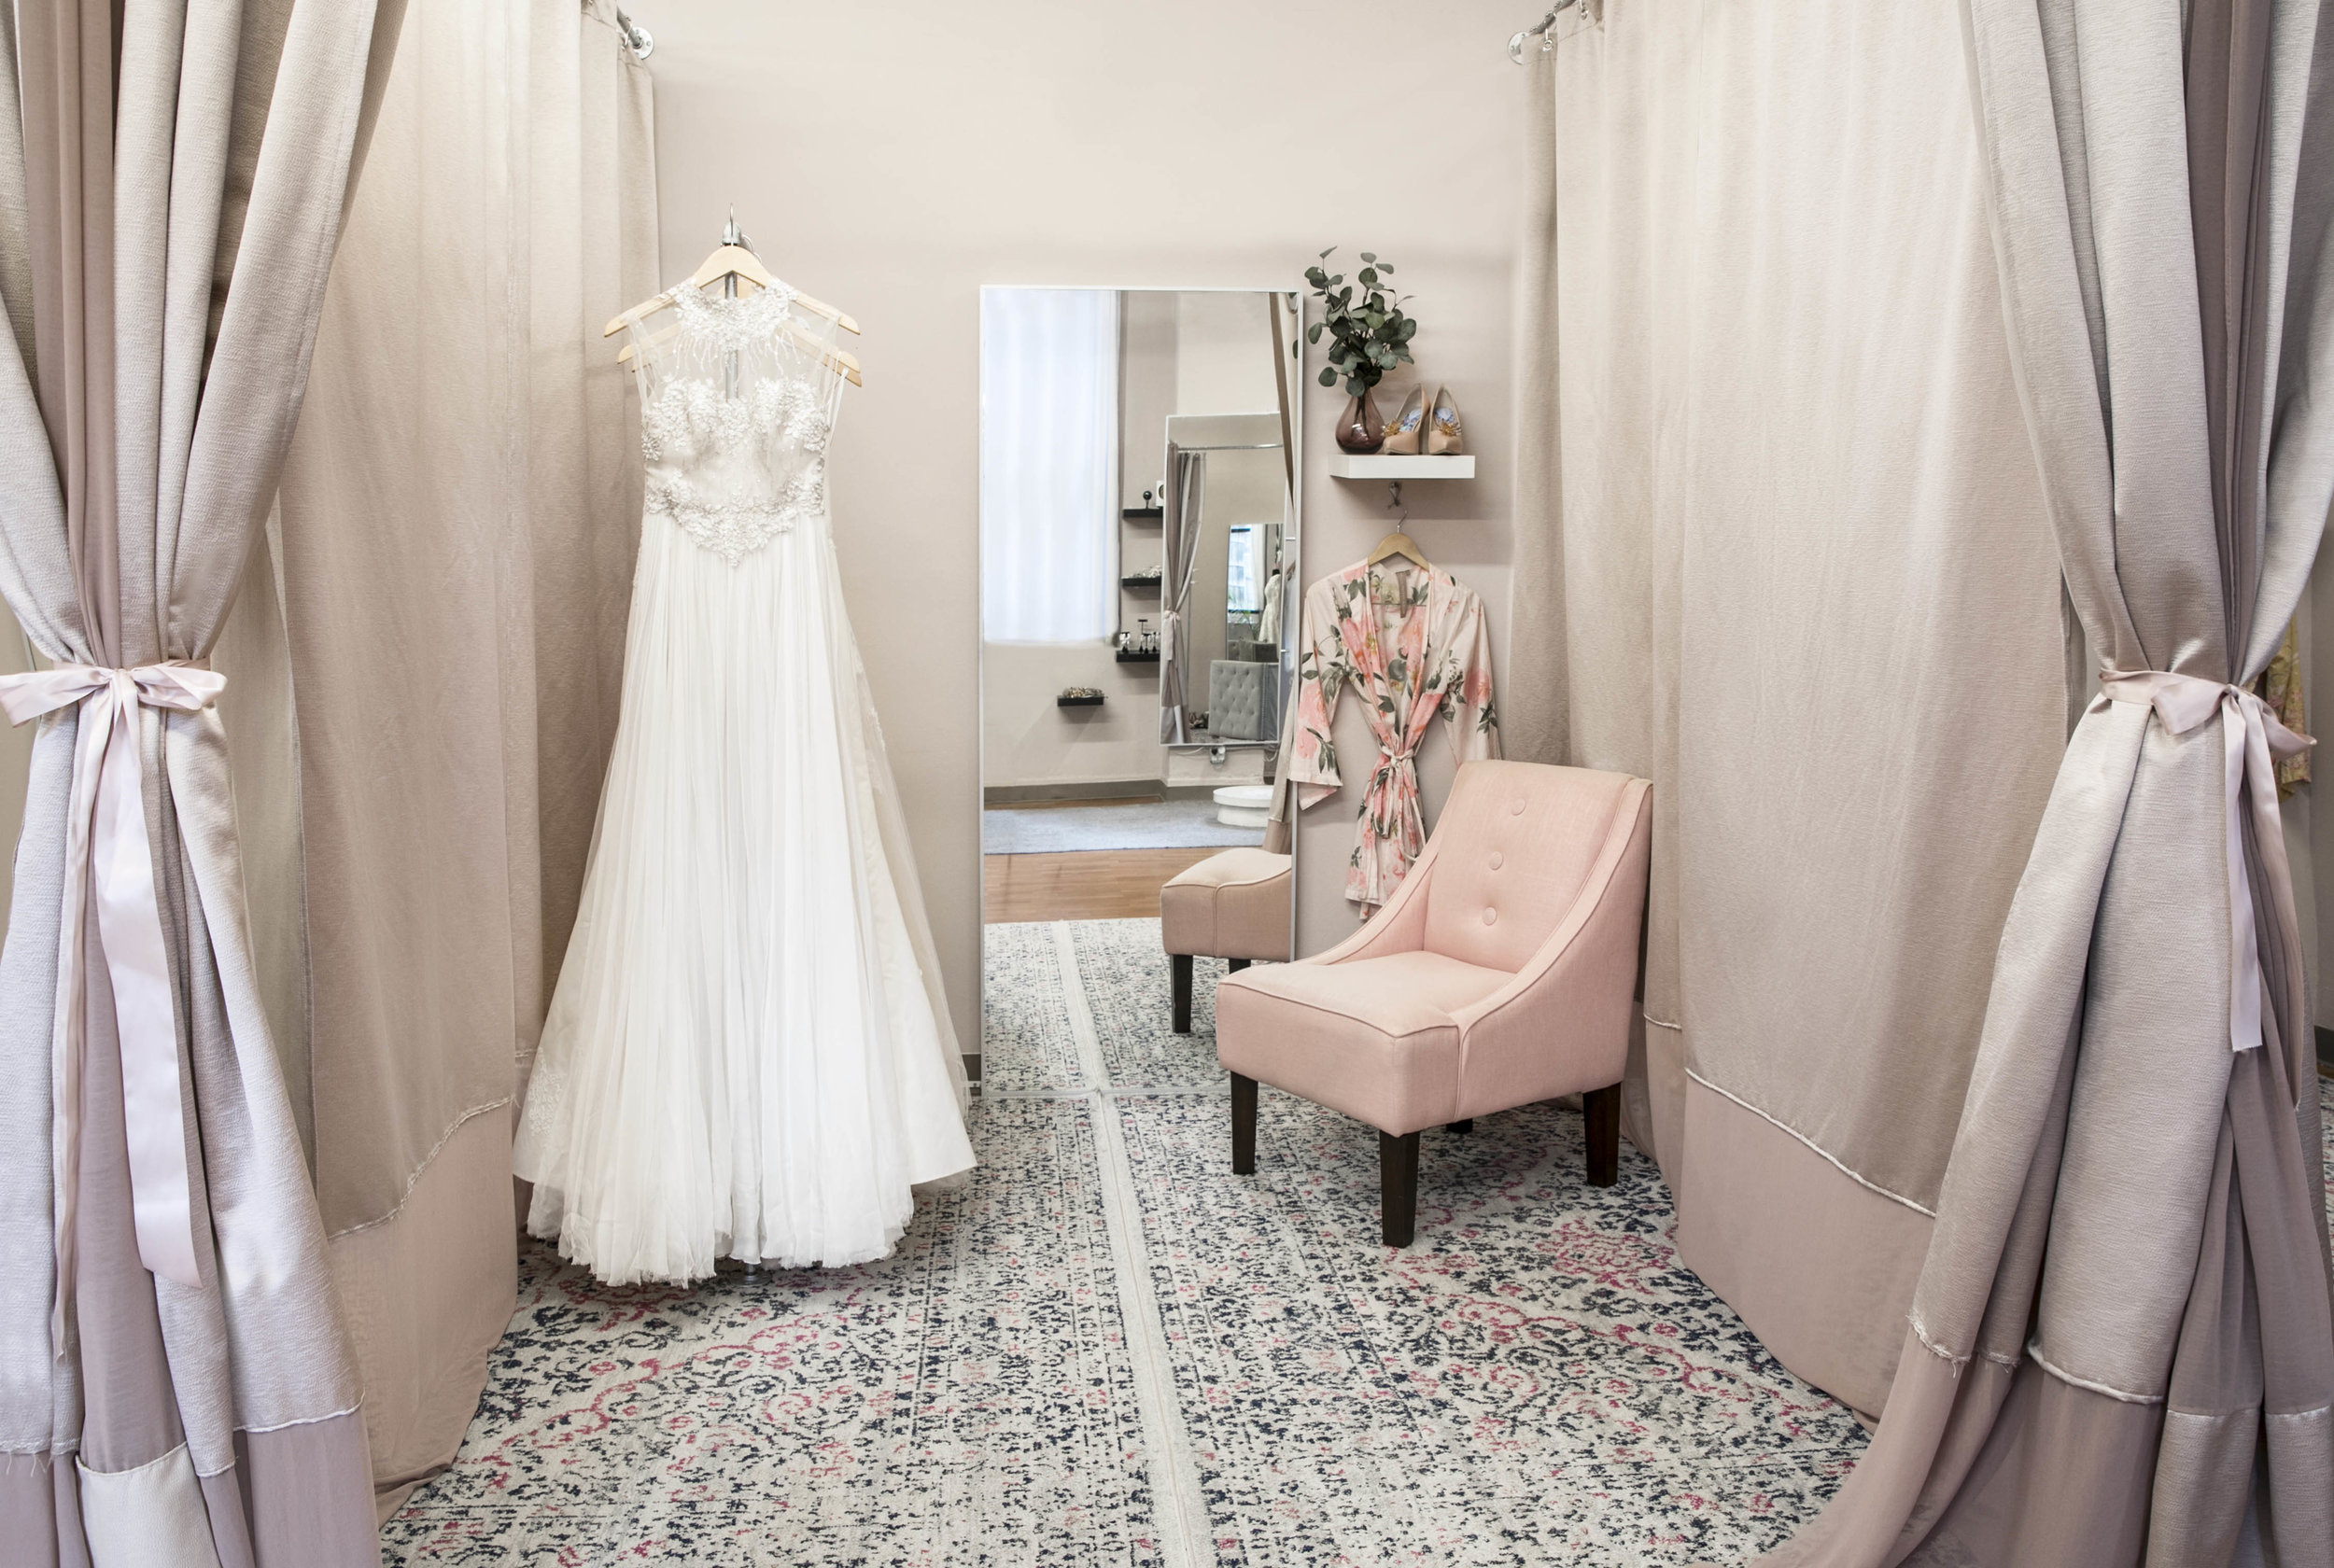 Copy of Our Story Bridal Boutique_1.jpg